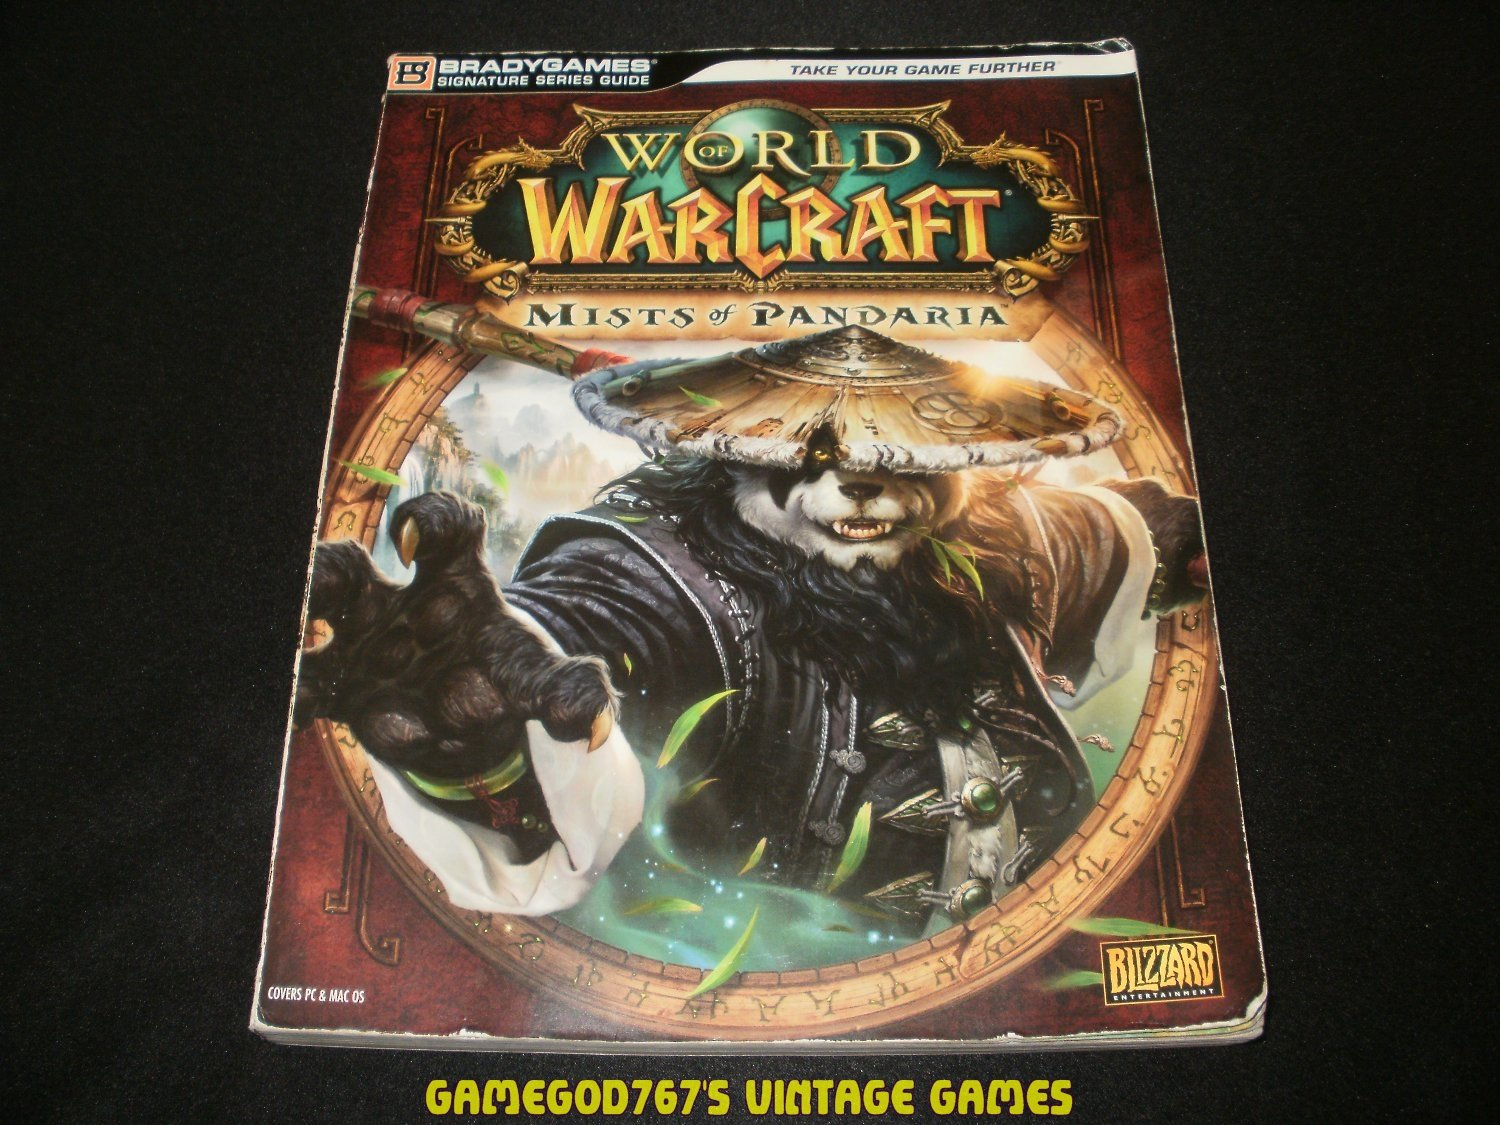 World of Warcraft Mists of Pandaria Signature Series Guide - Bradygames (2012) - Paperback